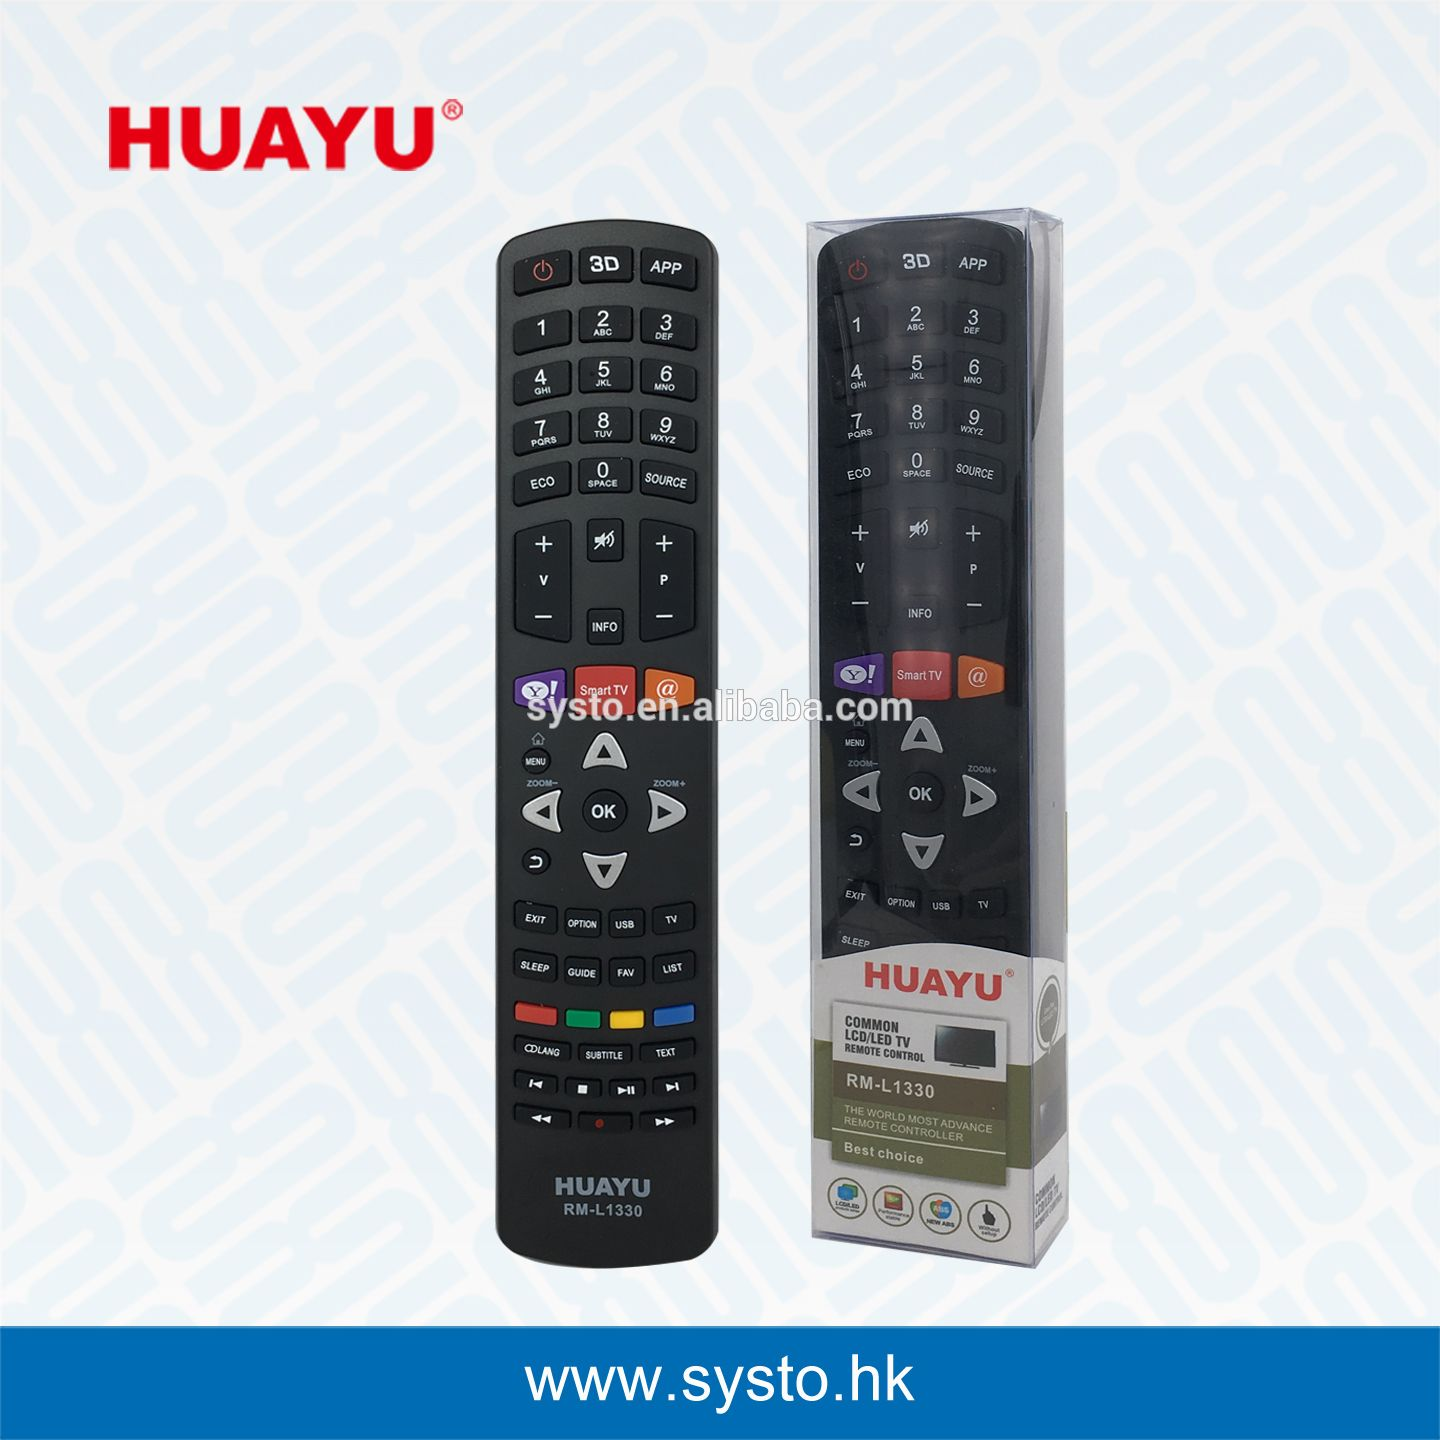 Systo released the TCL TV remote code-RM- L1330  It's applicable for